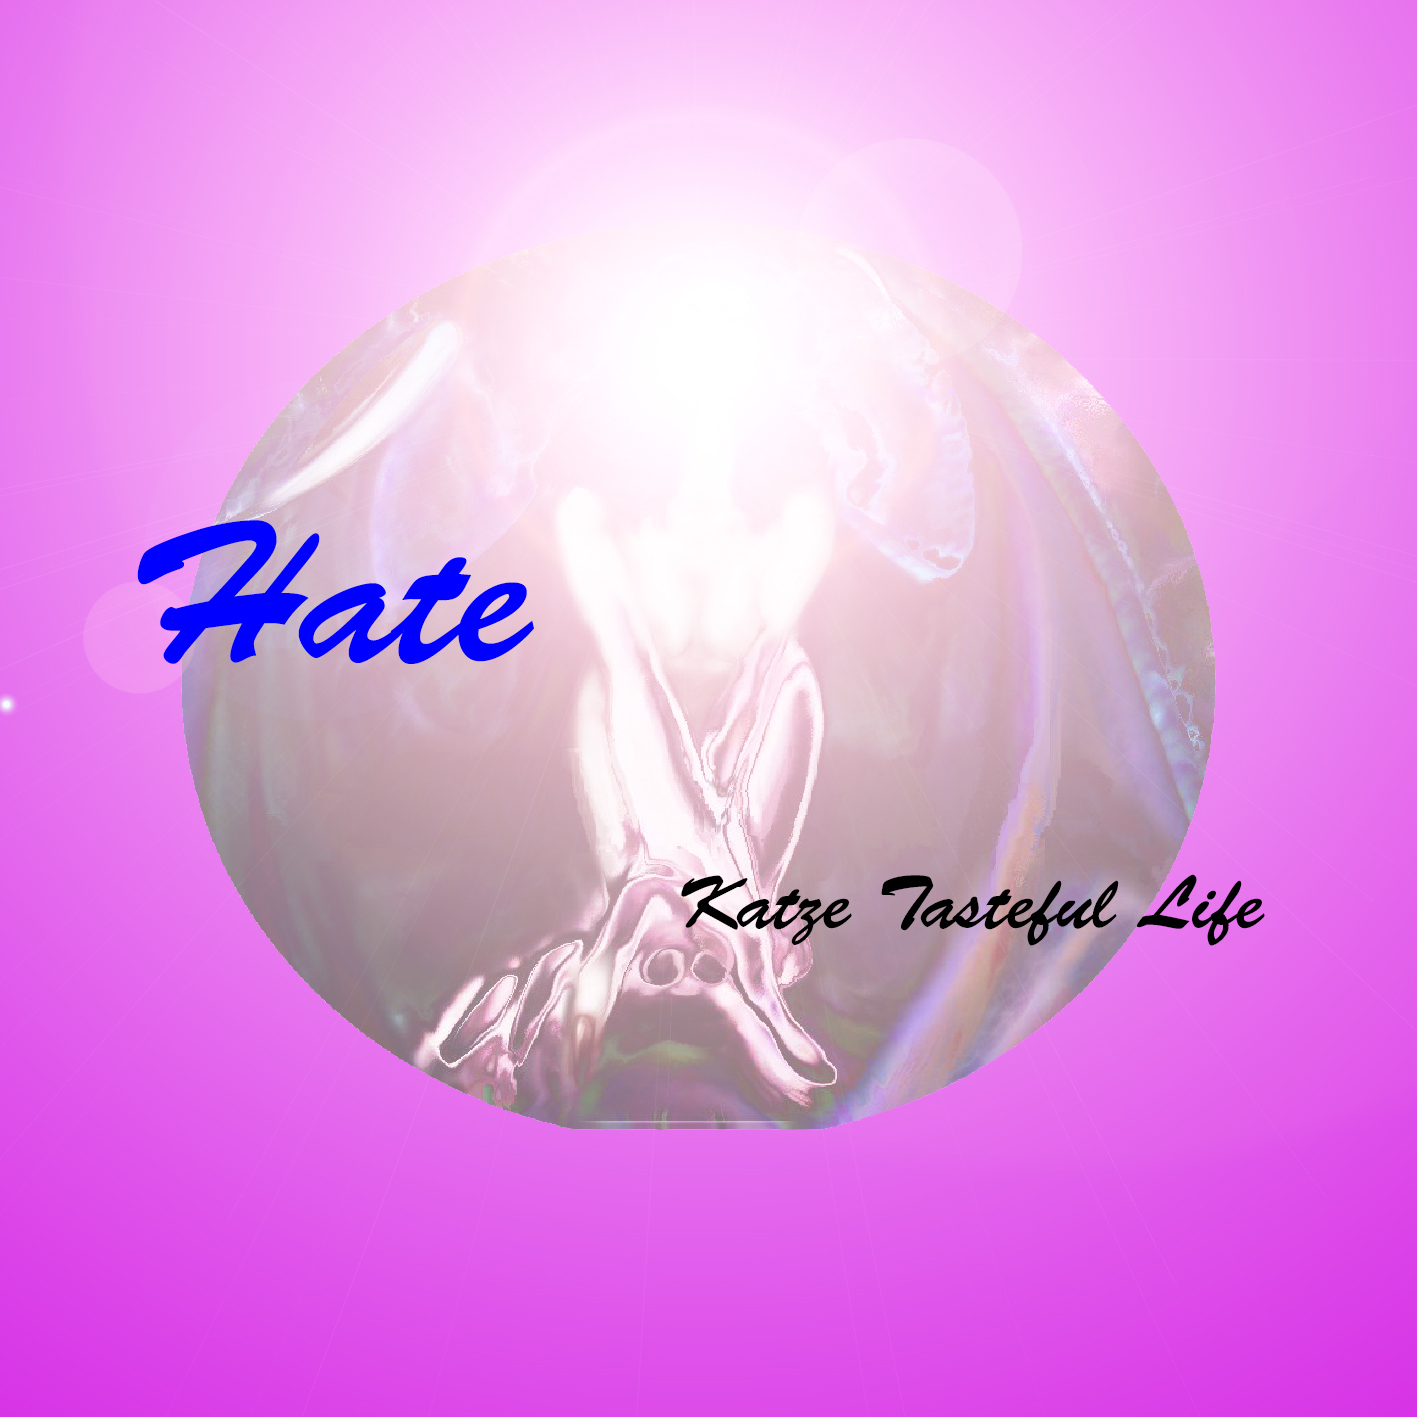 Hate_cd_book_front_katze